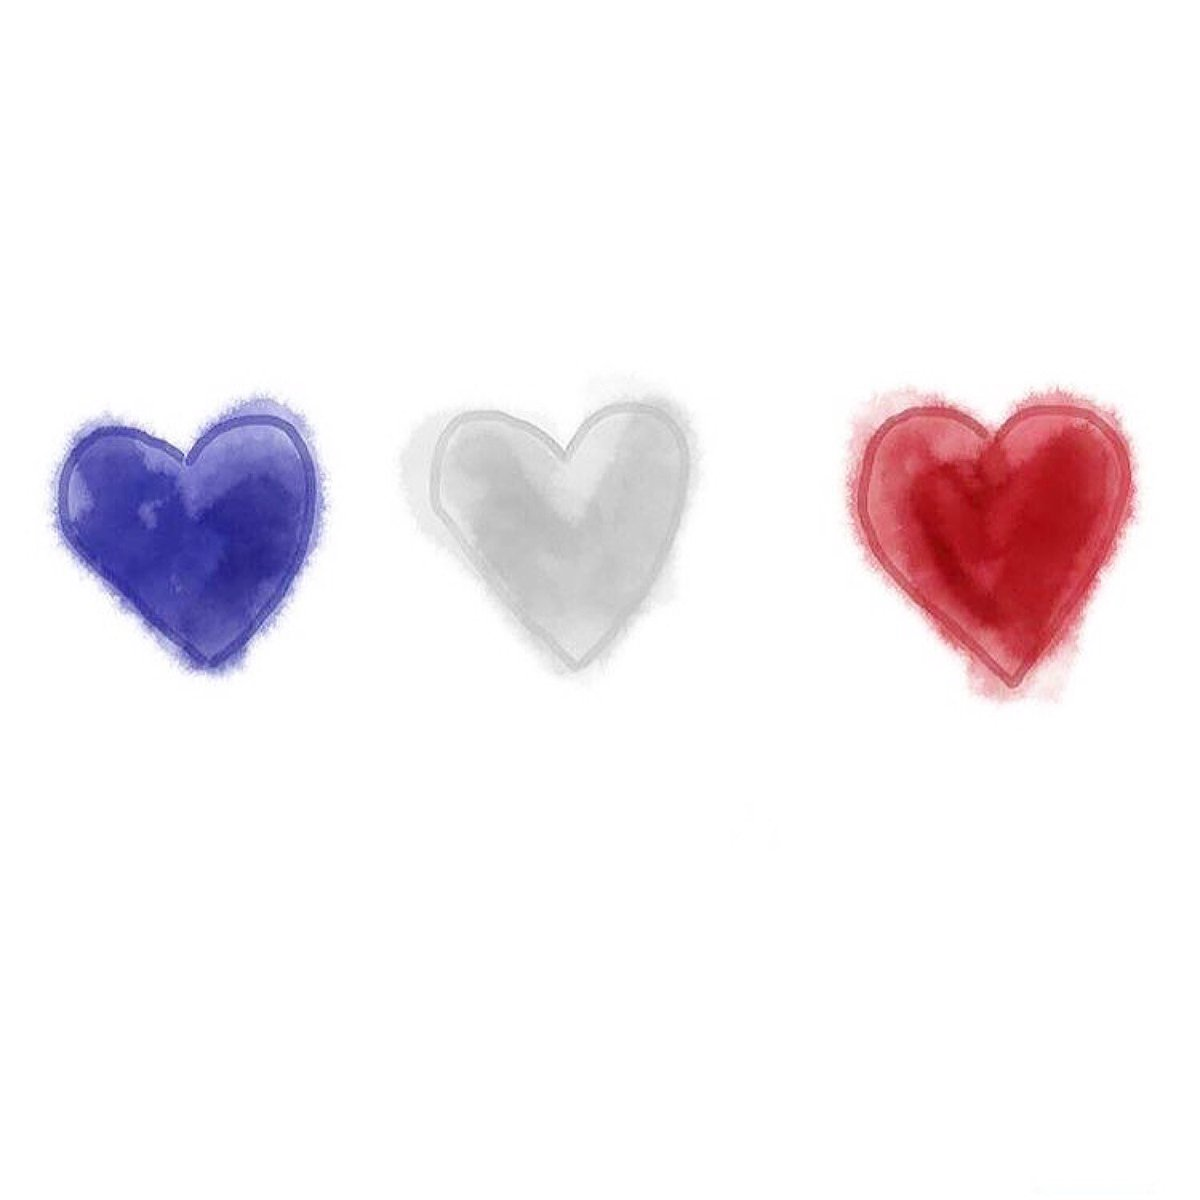 The people of Nice are in our thoughts during this tragic time. #PrayForNice https://t.co/EeKhn8oJR0